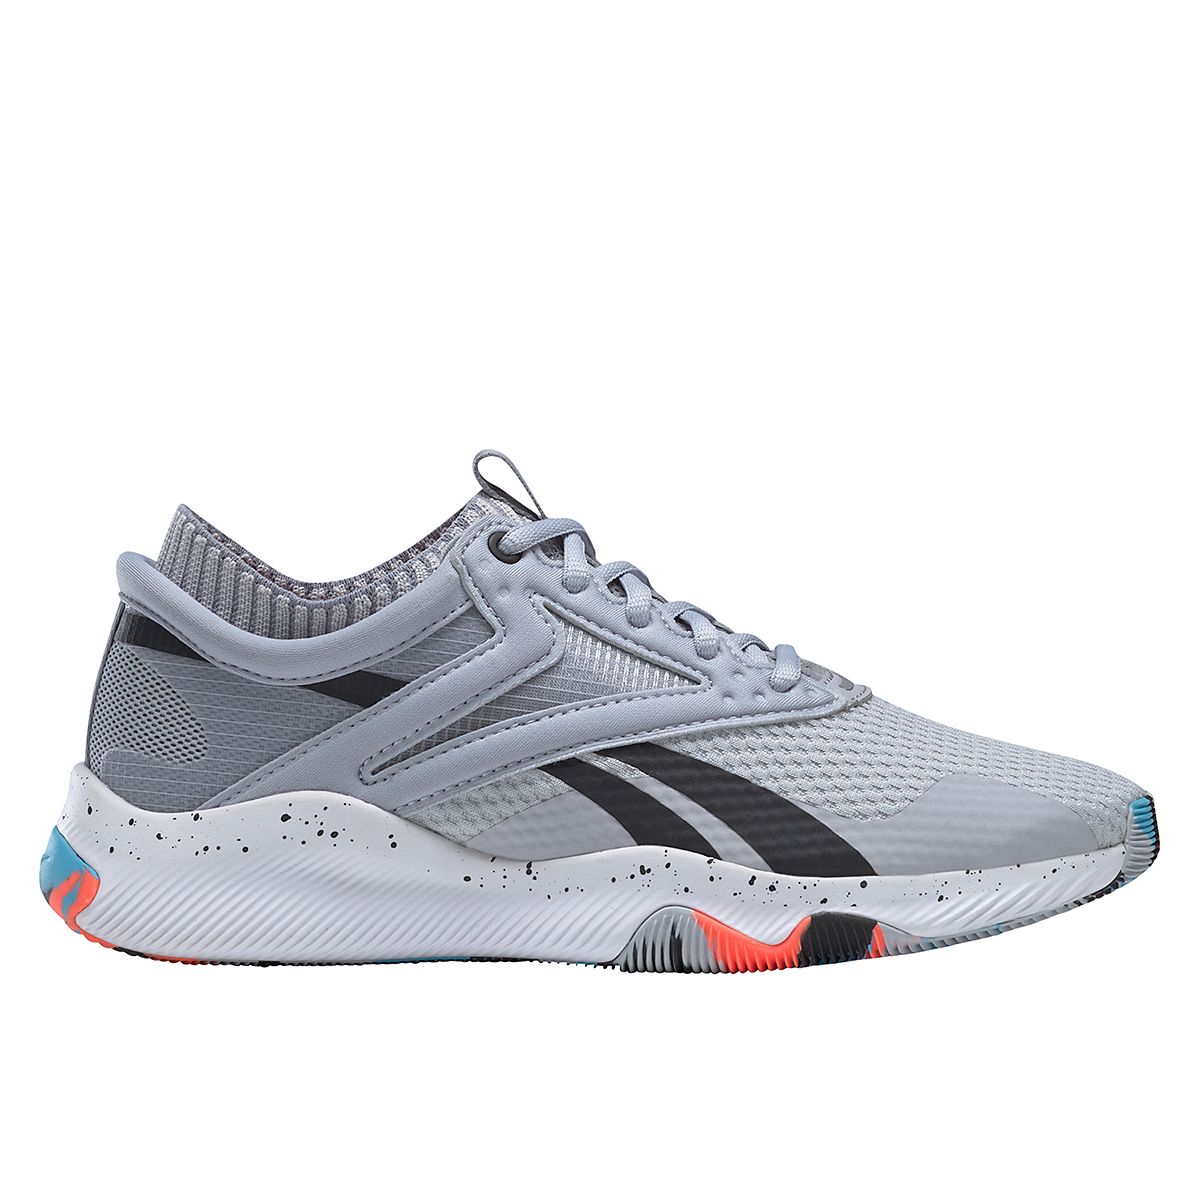 Women's Reebok HIIT TR Training Shoes - Color: Cold Grey 2/Orange Flare /Radiant Aqua - Size: 5 - Width: Regular, Cold Grey 2/Orange Flare /Radiant Aqua, large, image 1